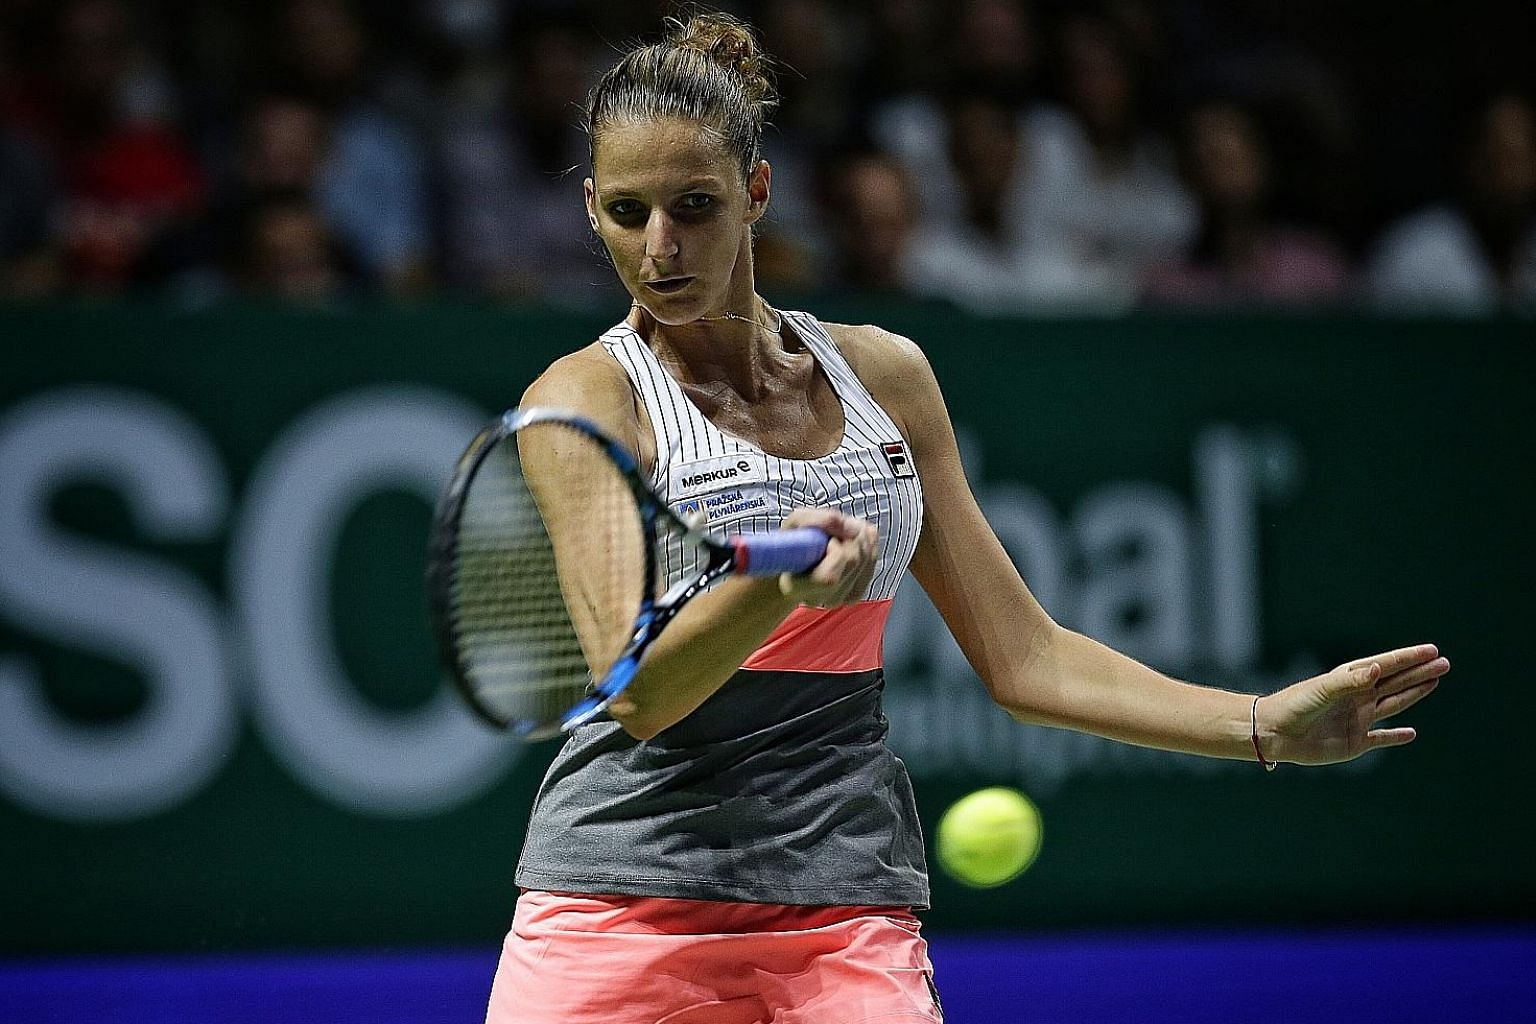 Czech Karolina Pliskova during her straightforward win over Venus Williams yesterday. She was more comfortable on the court compared to last year.